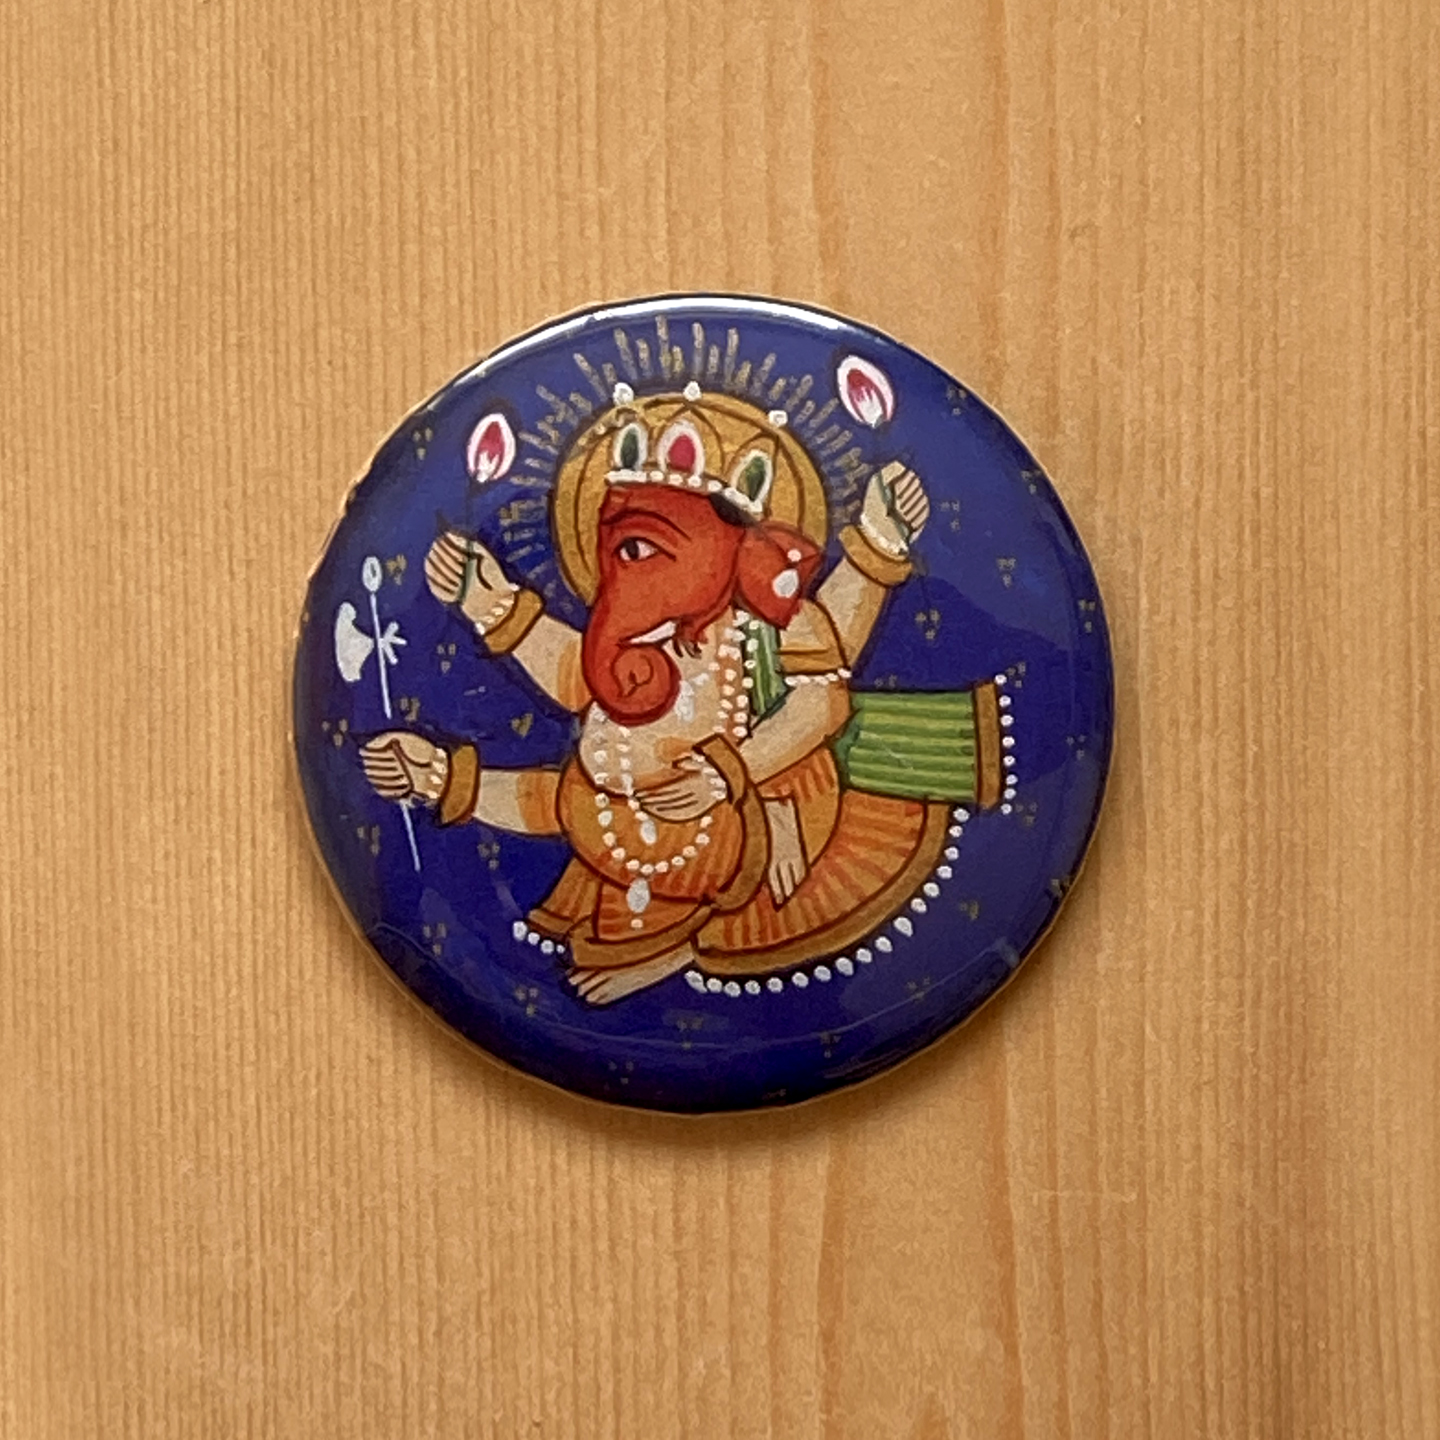 FRIDGE MAGNETS ROUND - Rajasthani Miniature Ganesha Blue